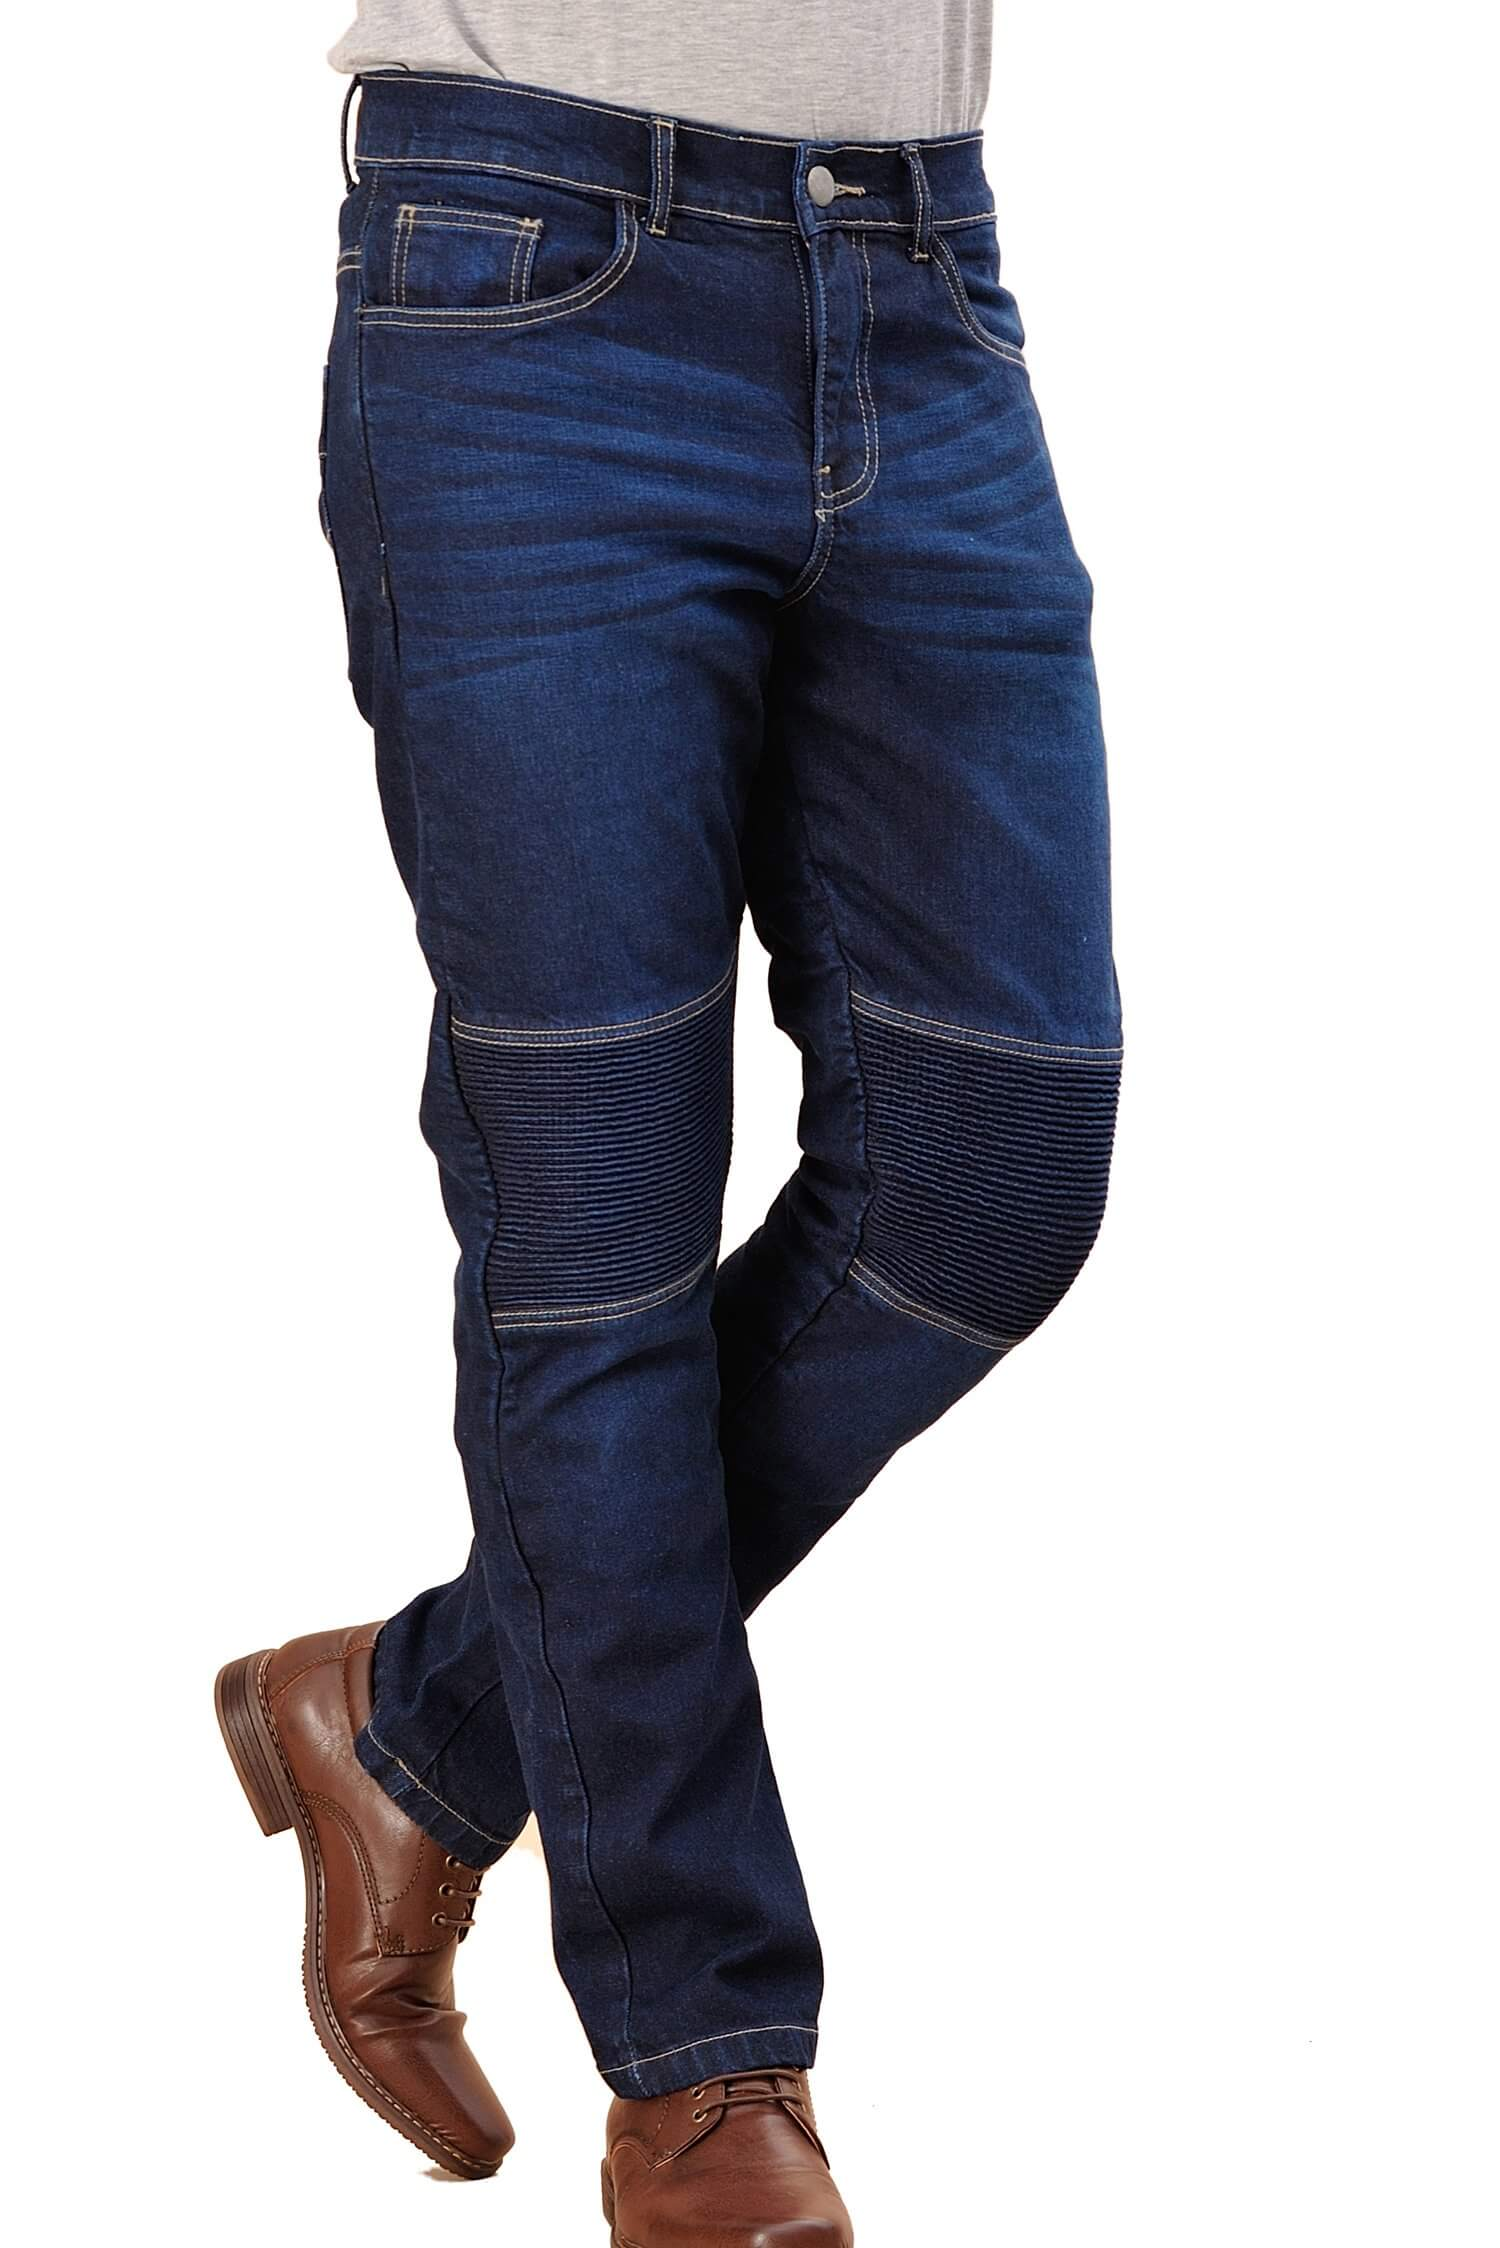 stretch-motorcycle-jeans-pants-8